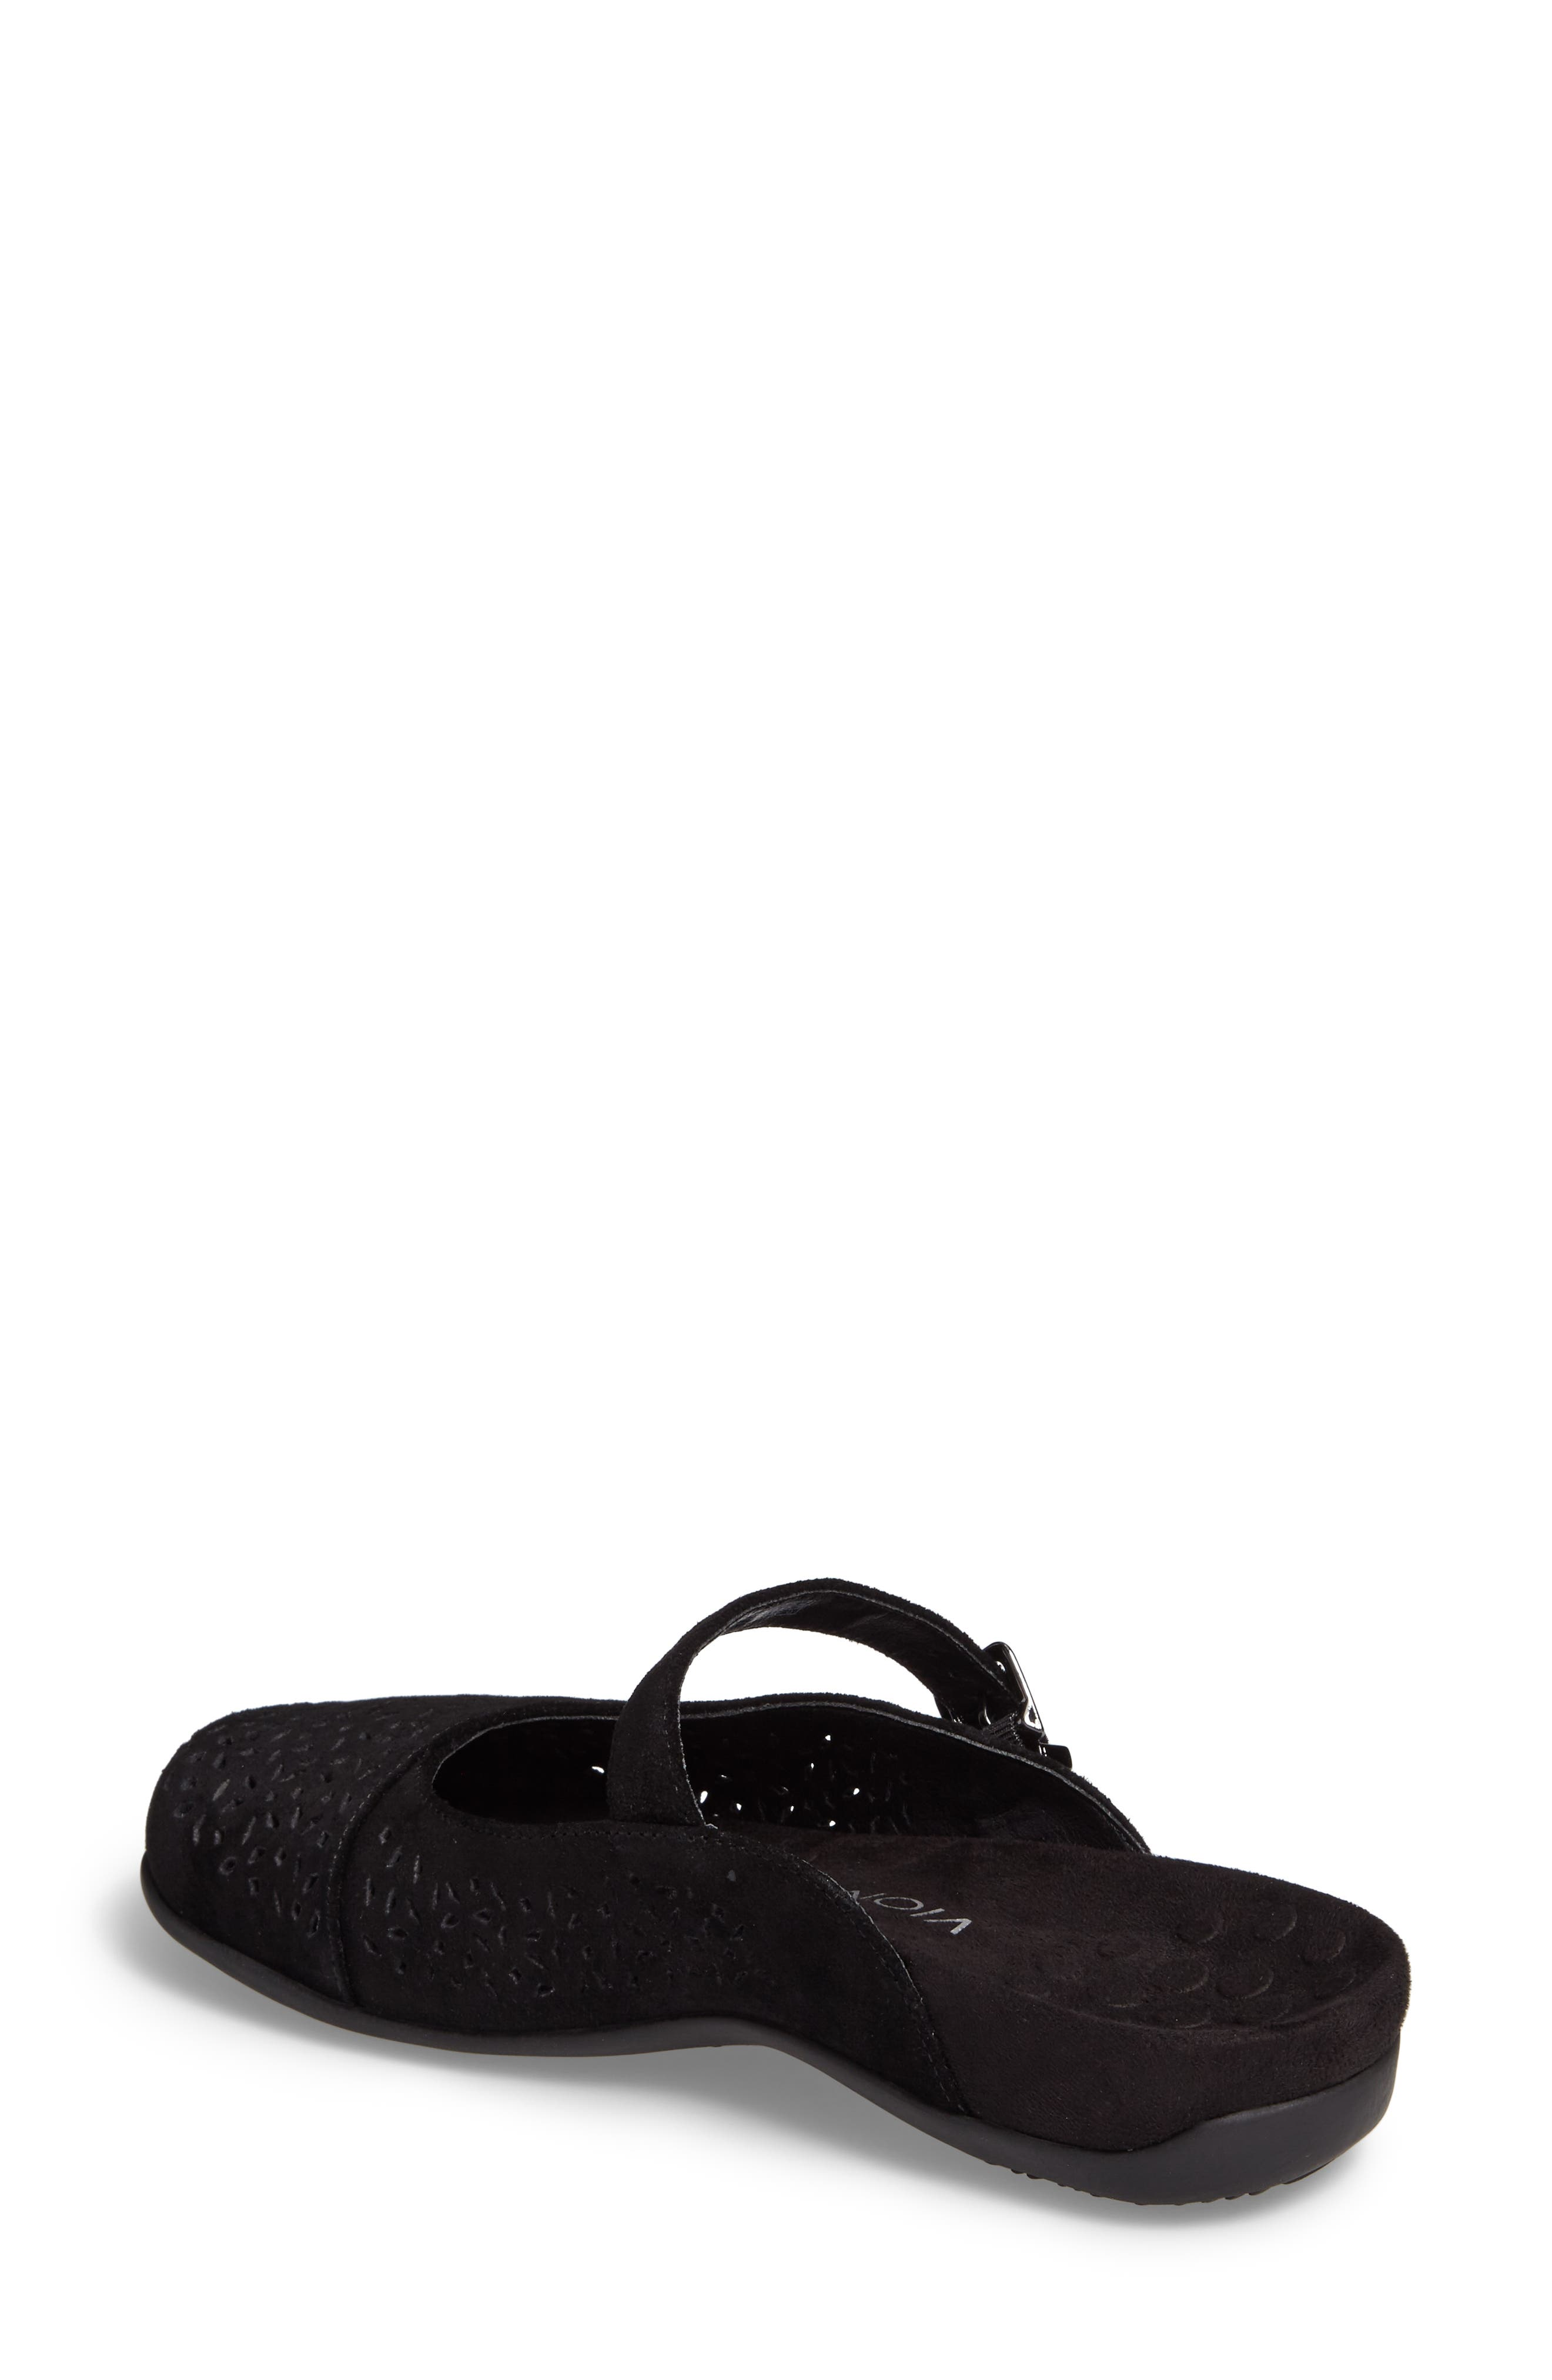 VIONIC, Rest Lidia Perforated Mary Jane Mule, Alternate thumbnail 2, color, BLACK SUEDE